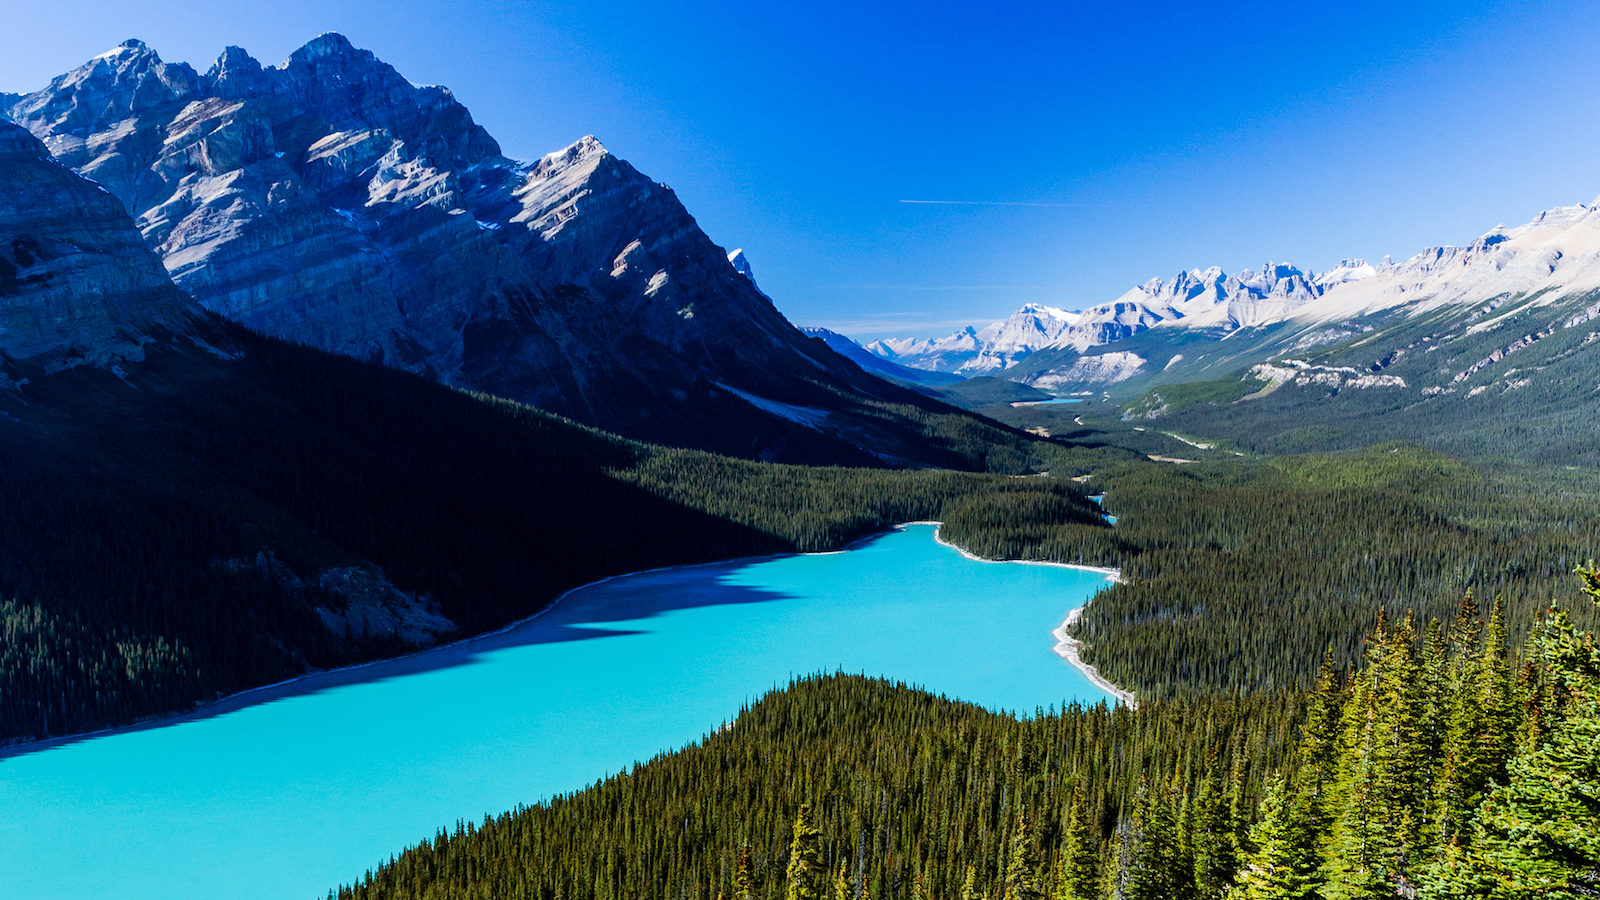 Planning a Canadian Rockies Road Trip